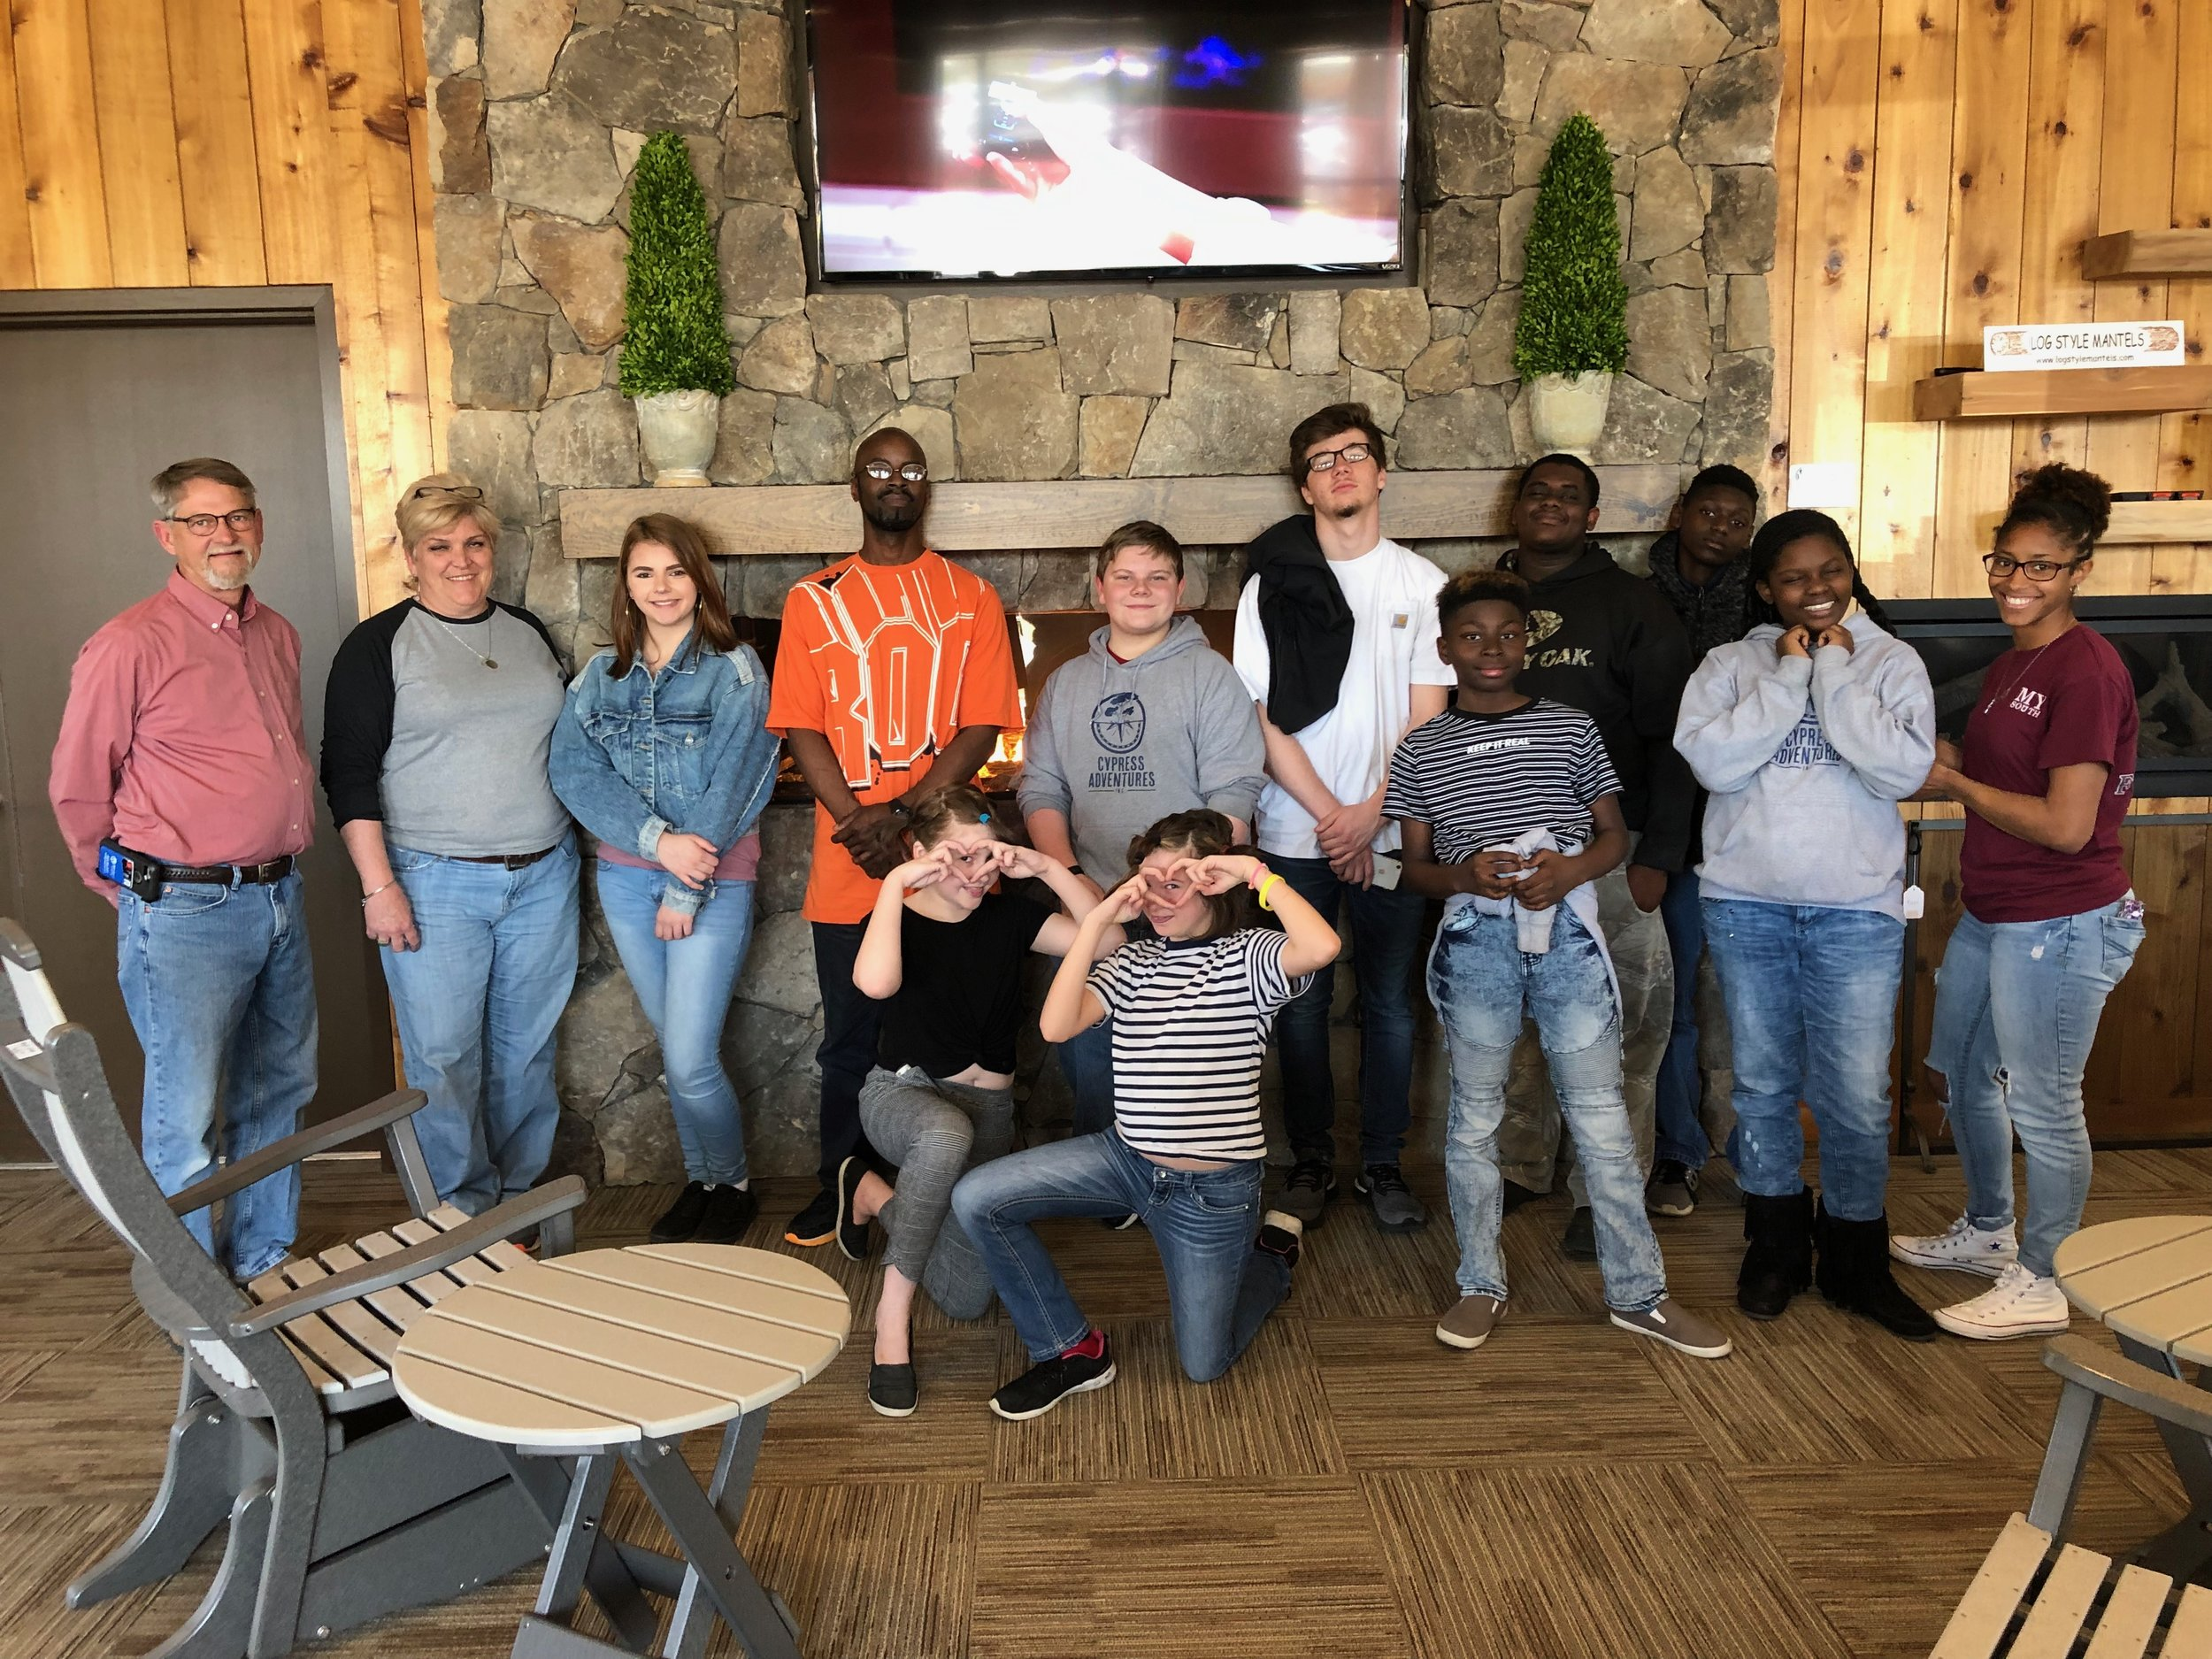 "Team #2 : sponsored by West Propane & Outdoor Living - Fall 2018 Graduates - Tues/Thurs Group - with celebrity guest WENDY HAYES""Black or White"" by Michael Jackson to promote love for all humans of all races!"